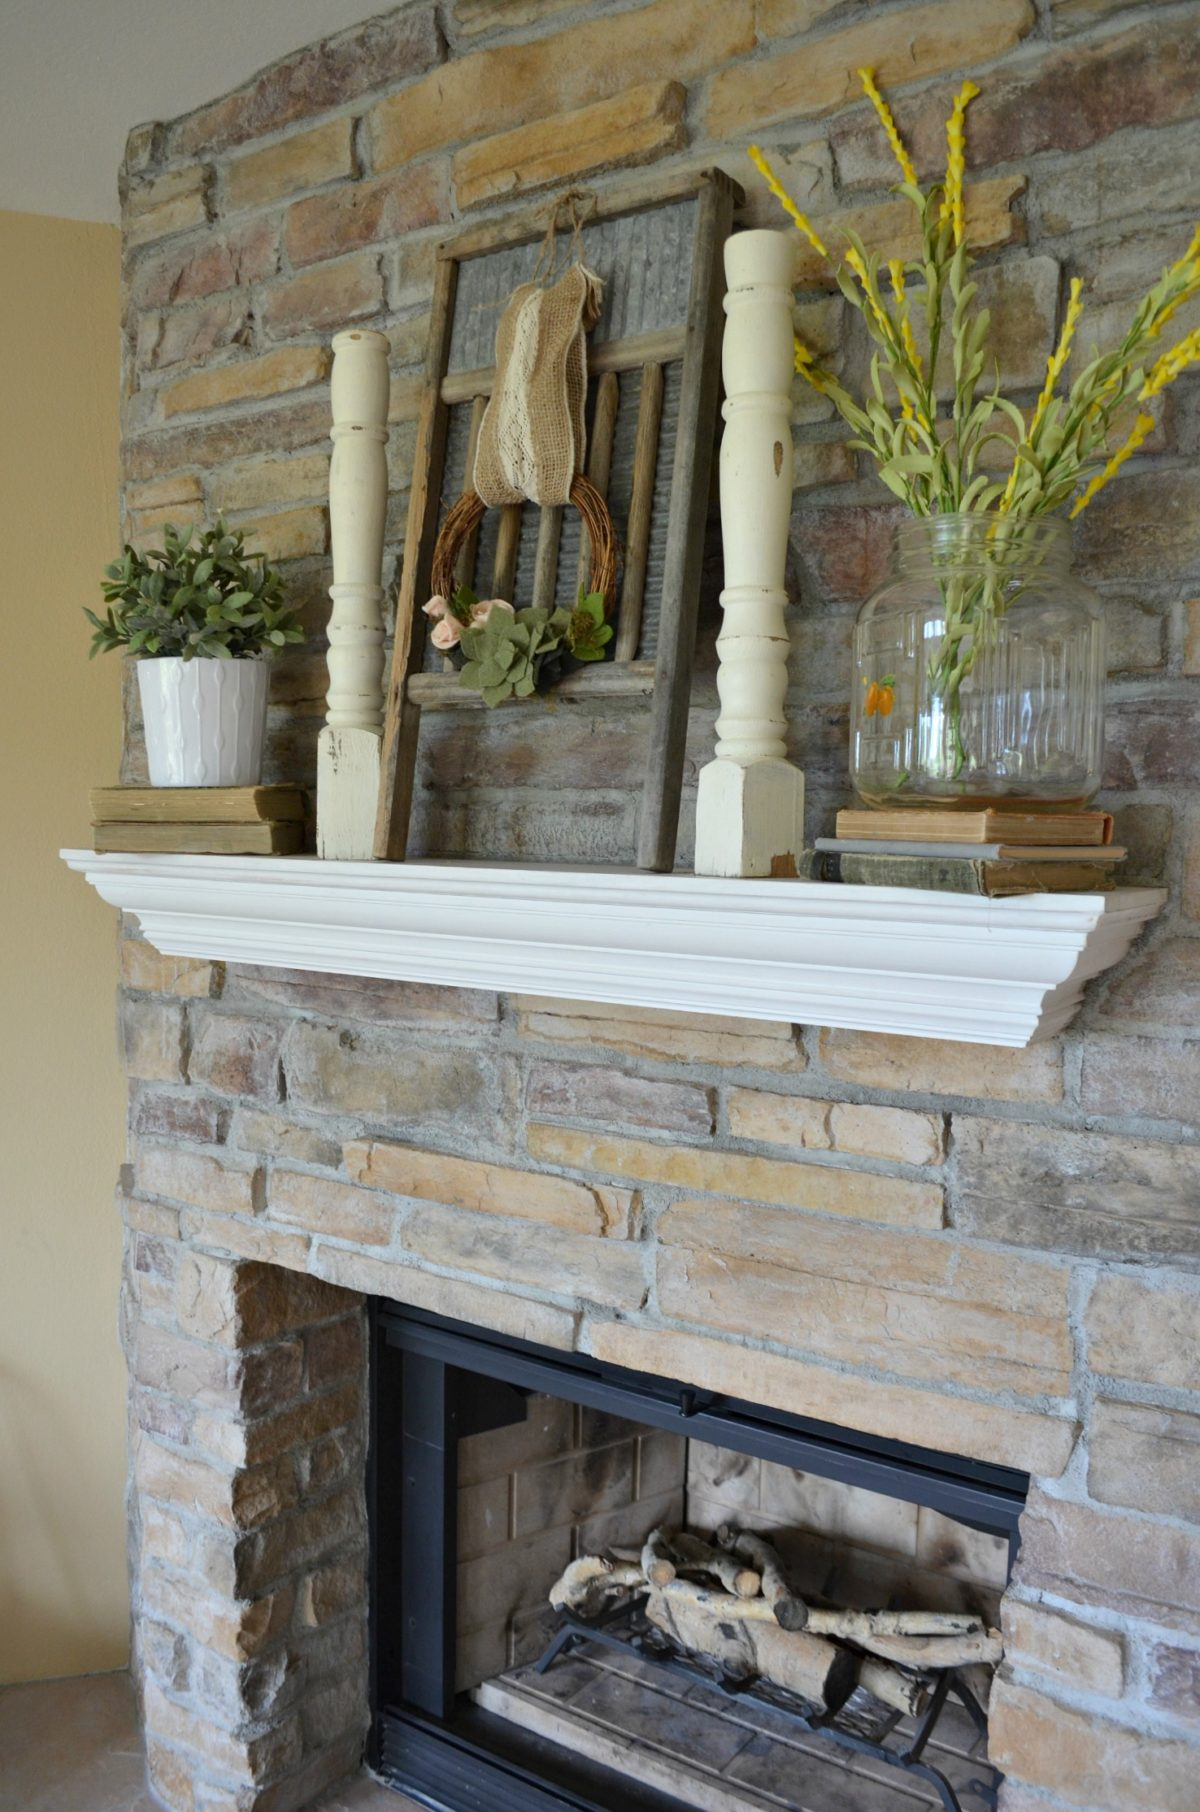 Simple Summertime Mantel and Old Glass Jar